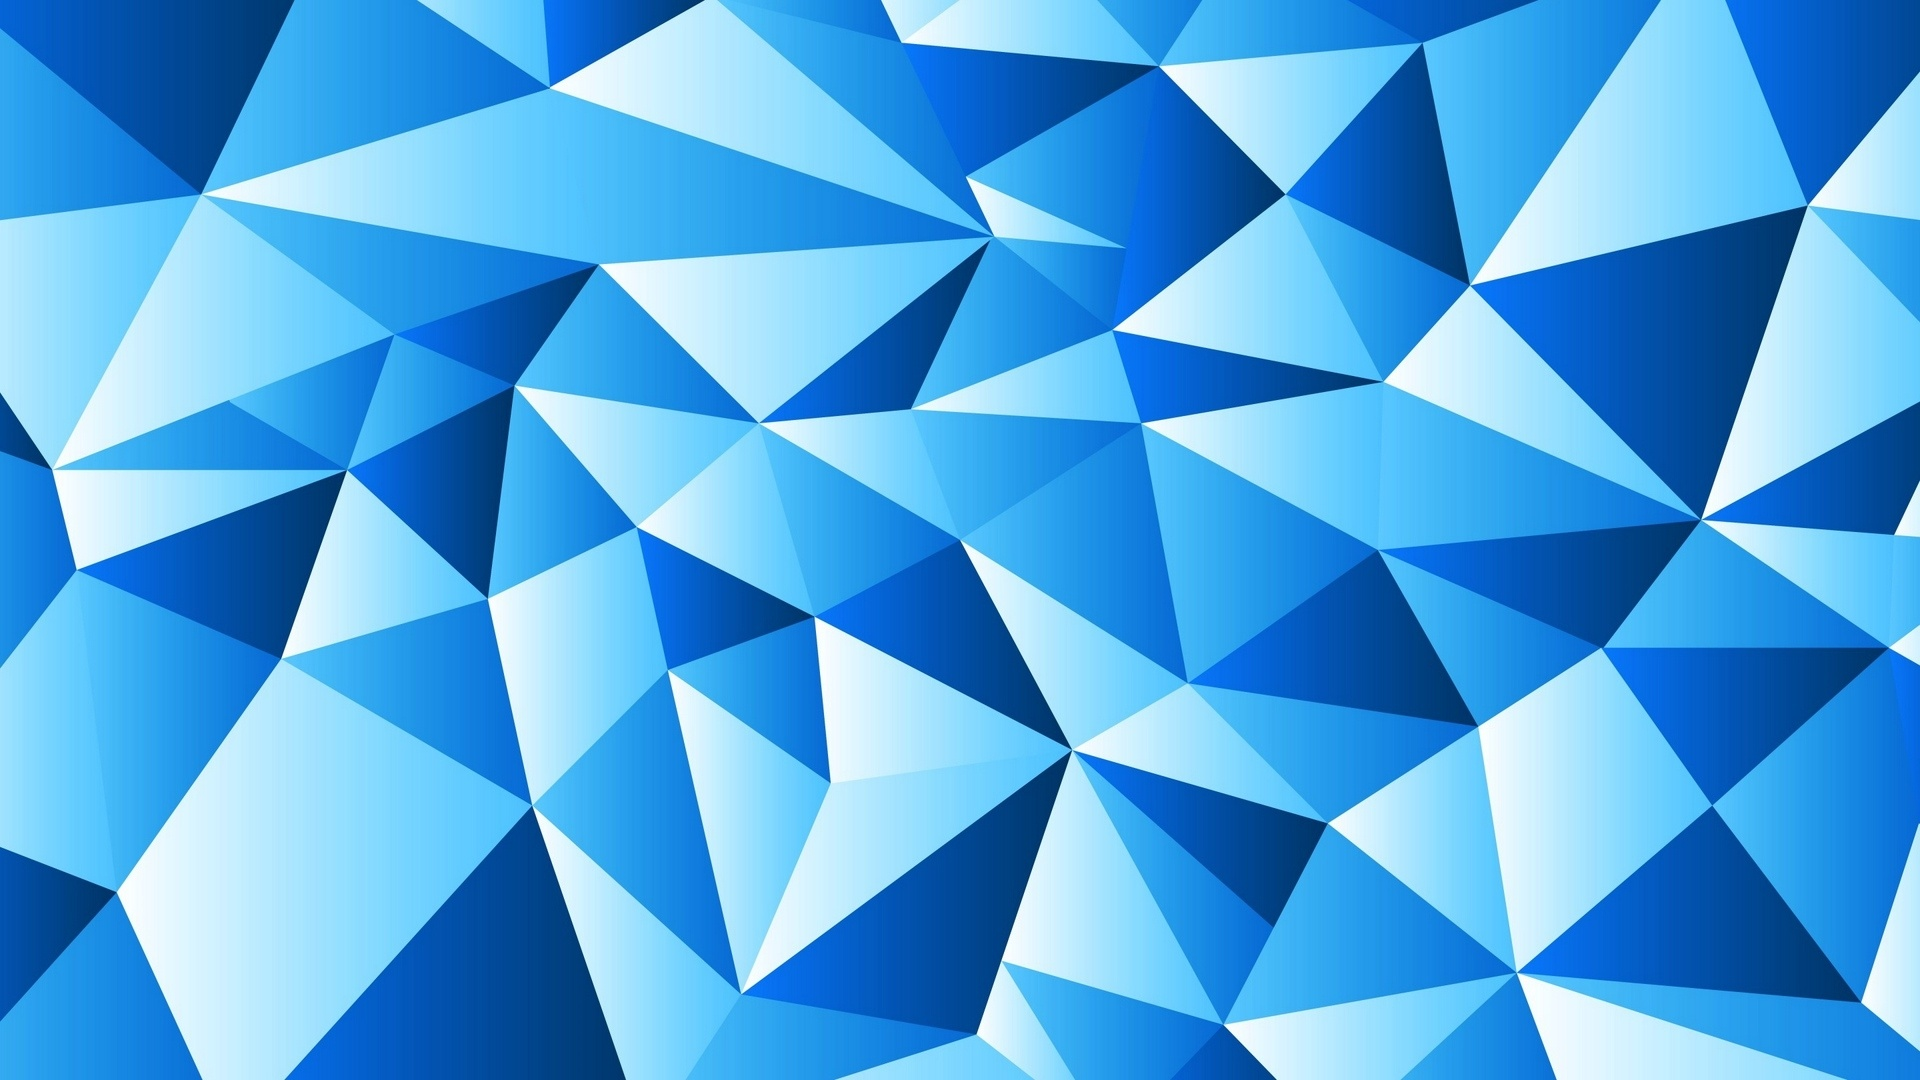 Shapes Triangle wallpaper for pc